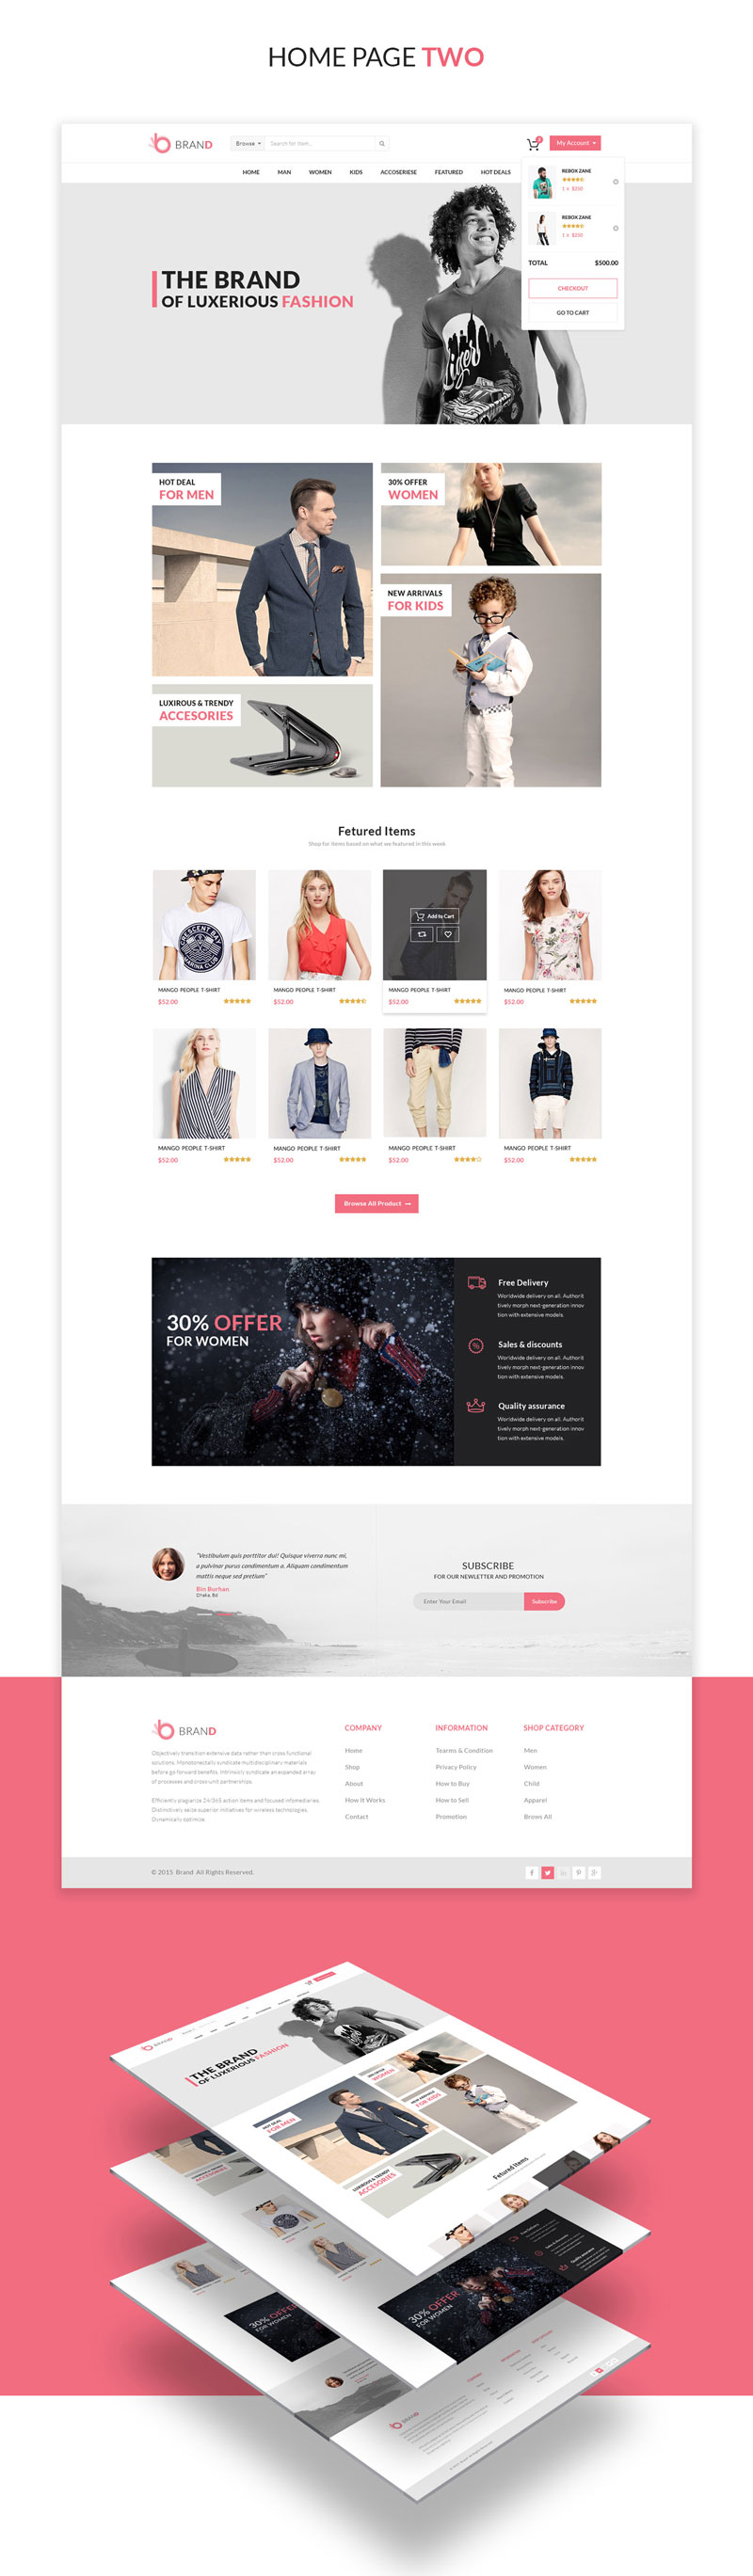 Shopping Cart PSD Template Free Download 1